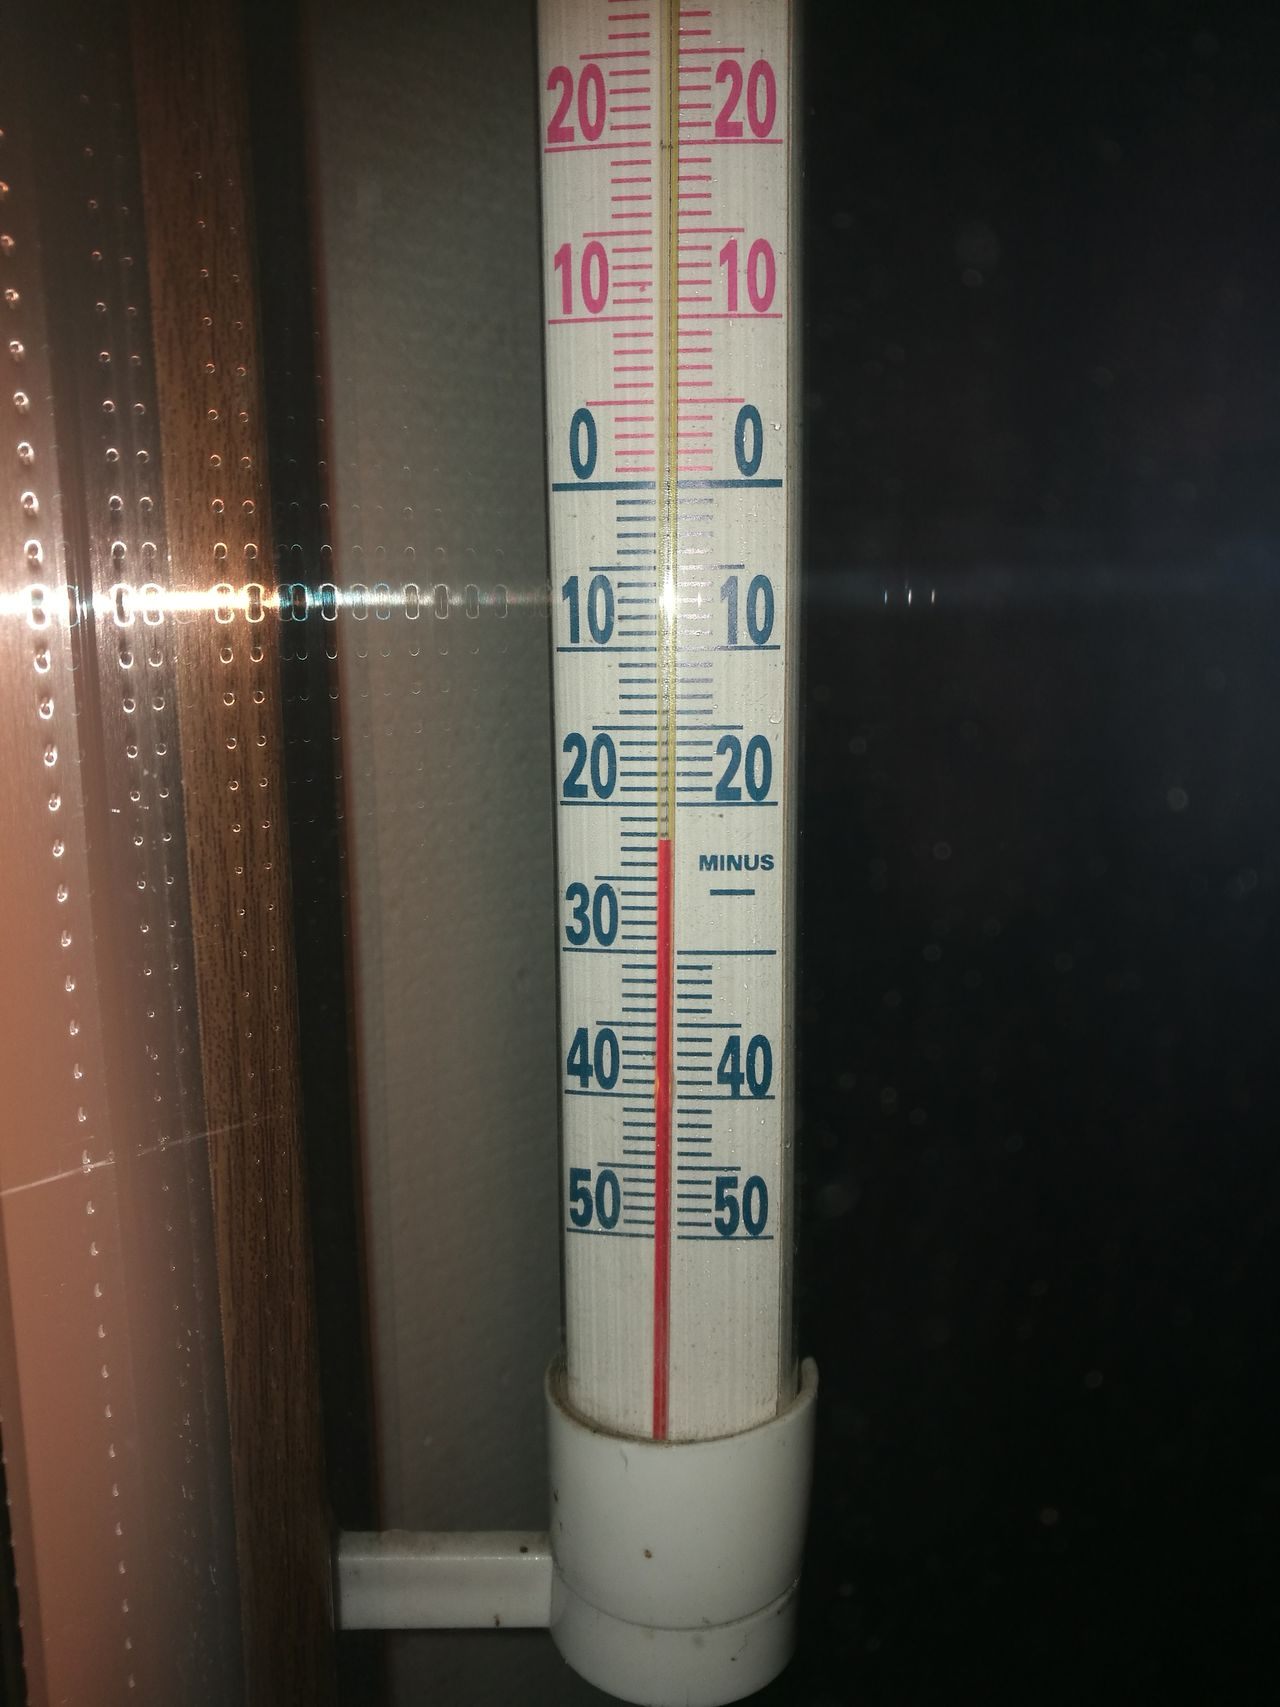 Thermometer Temperature Day Indoors  Popular Photo This Week On Eyeem New Talents On EyeEm First Eyeem Photo Best EyeEm Shot No People Thisweekoneyeem The Week On EyeEem Popular Photos New Talents New Talent This Week Eyem Best Shots House